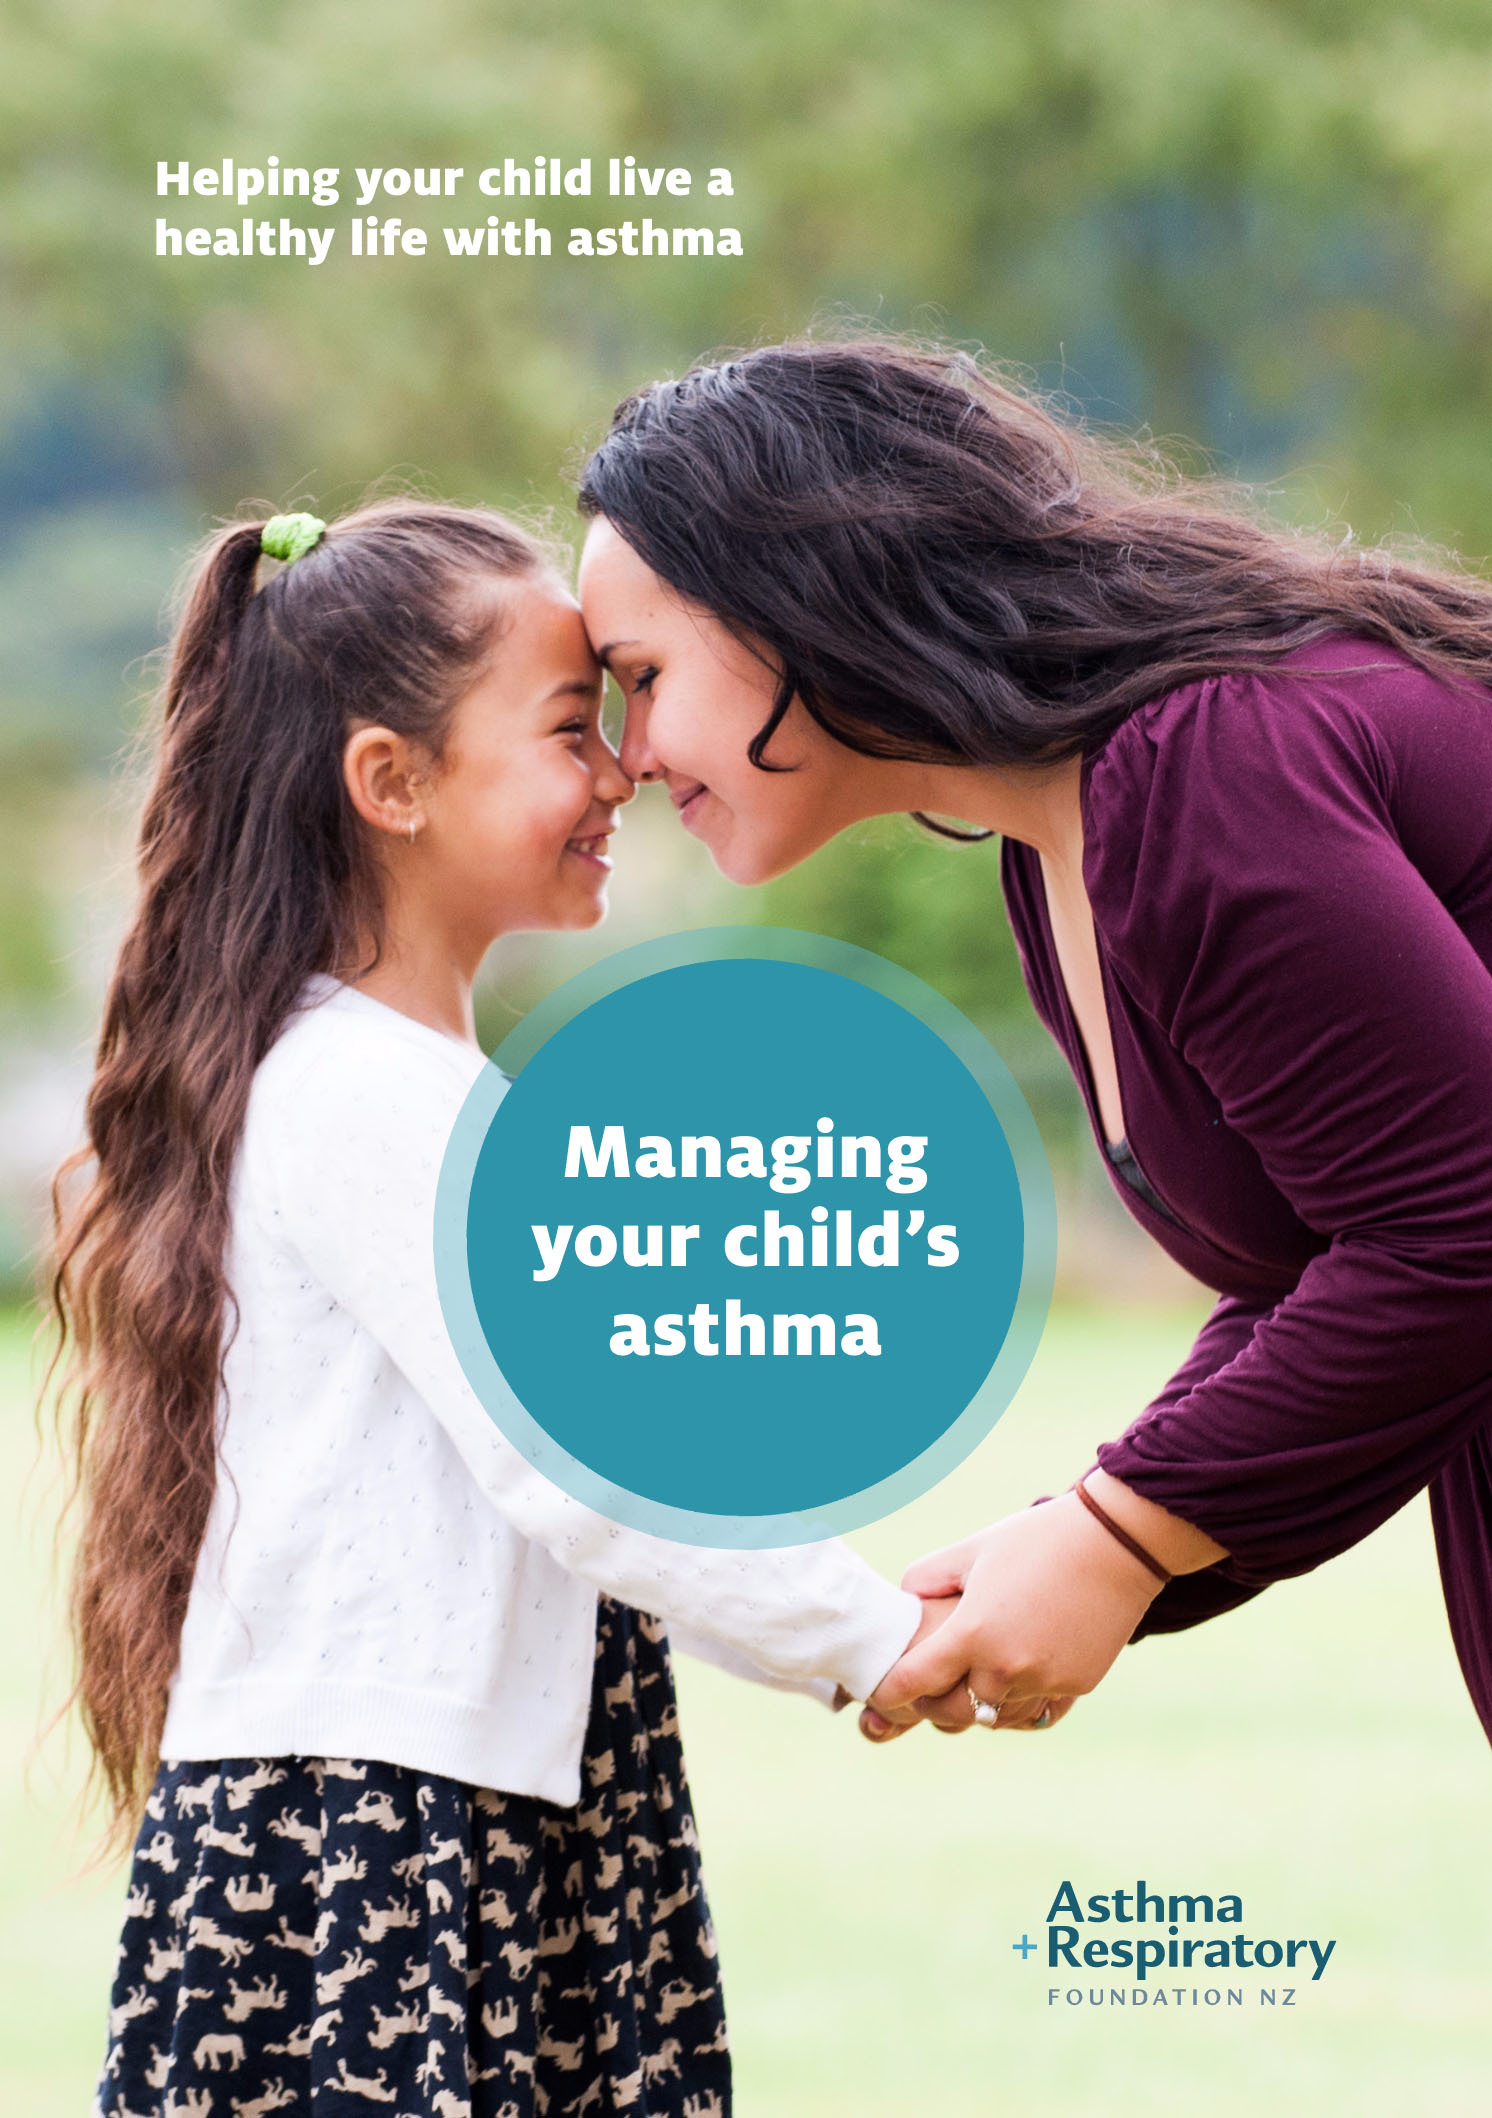 Managing your child's asthma